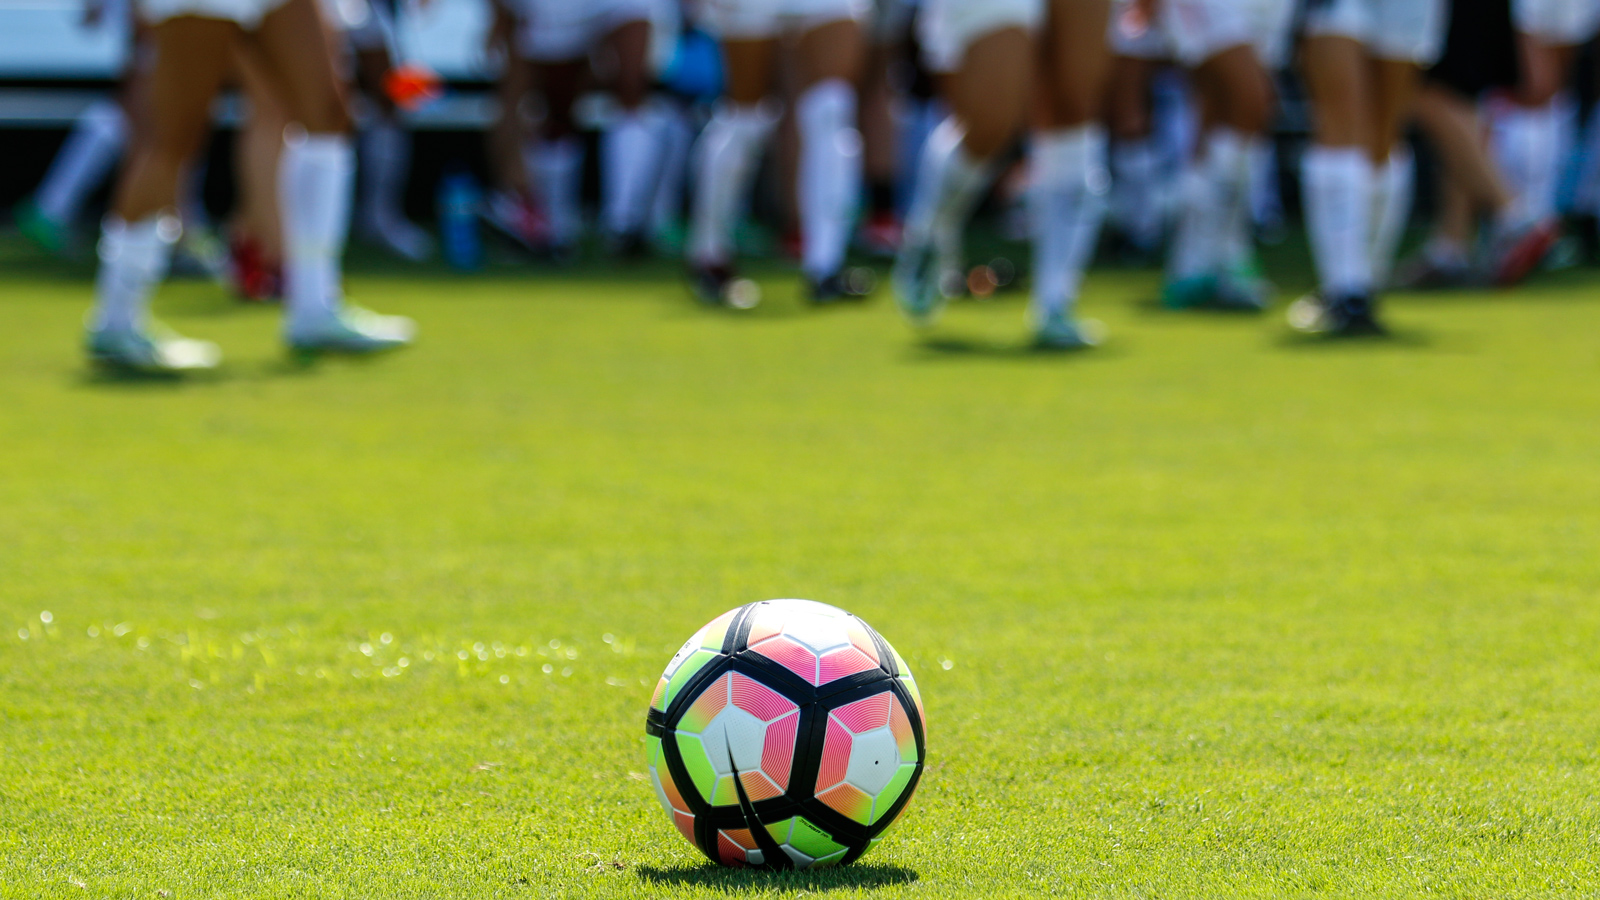 Canada routs Cuba 12-0, Jamaica wins in Women's World Cup qualifying